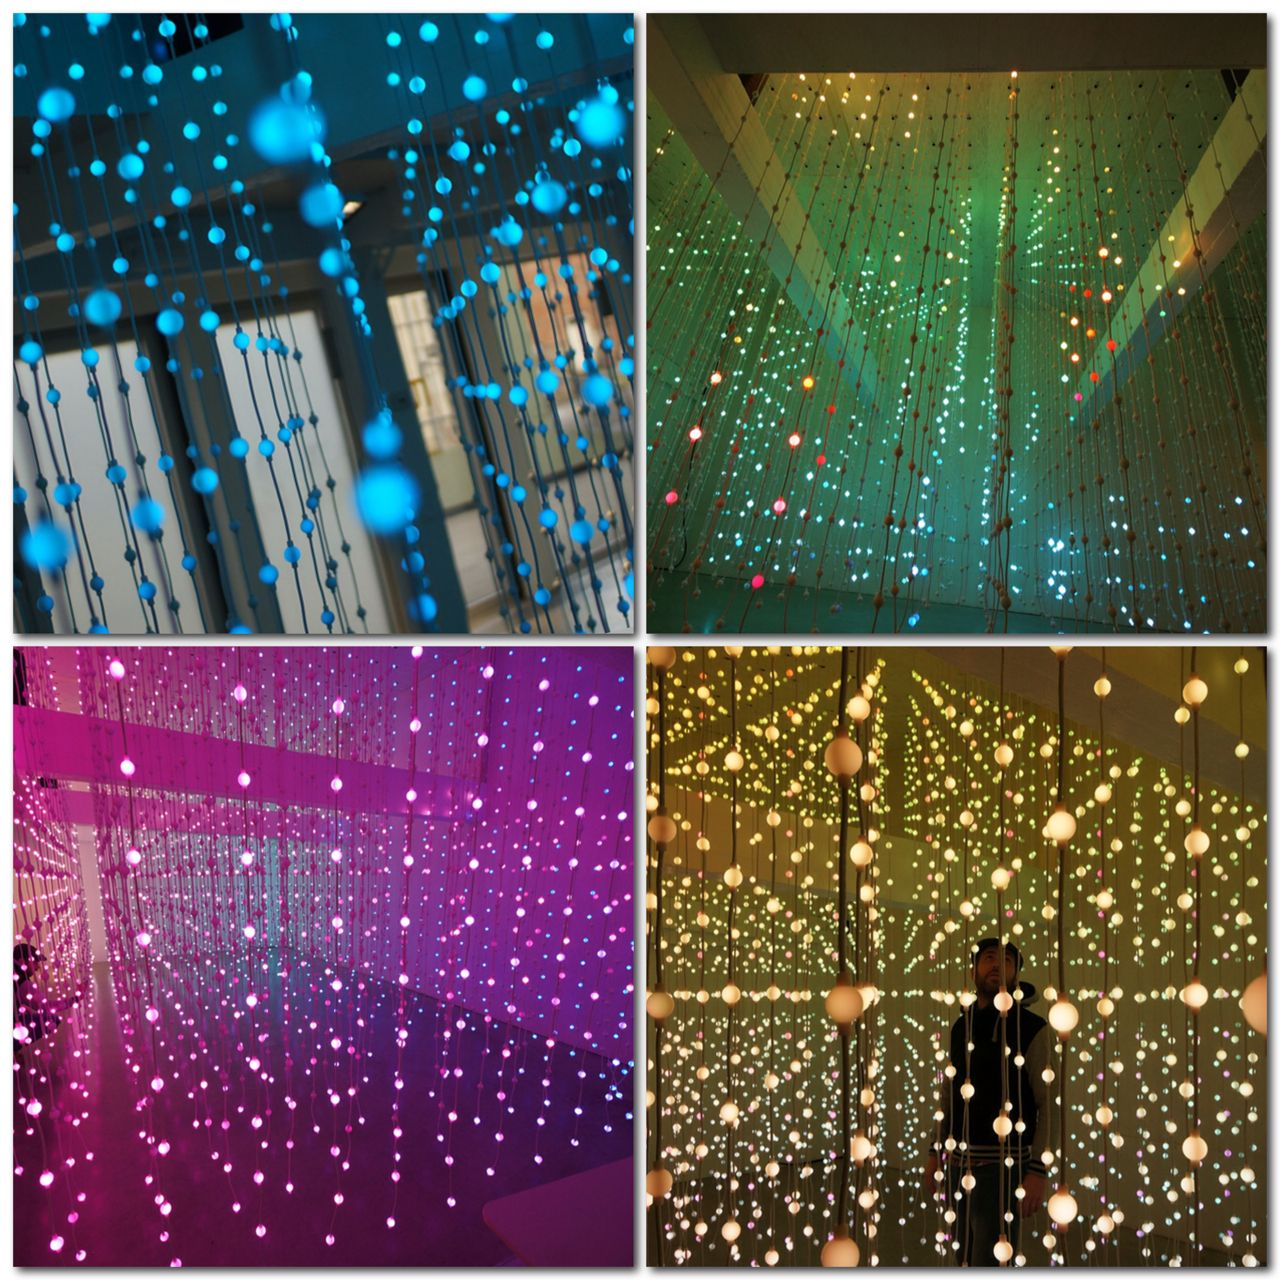 A project by digital arts collective Squidsoup. 8,064 points of light suspended in a physical walkthrough space